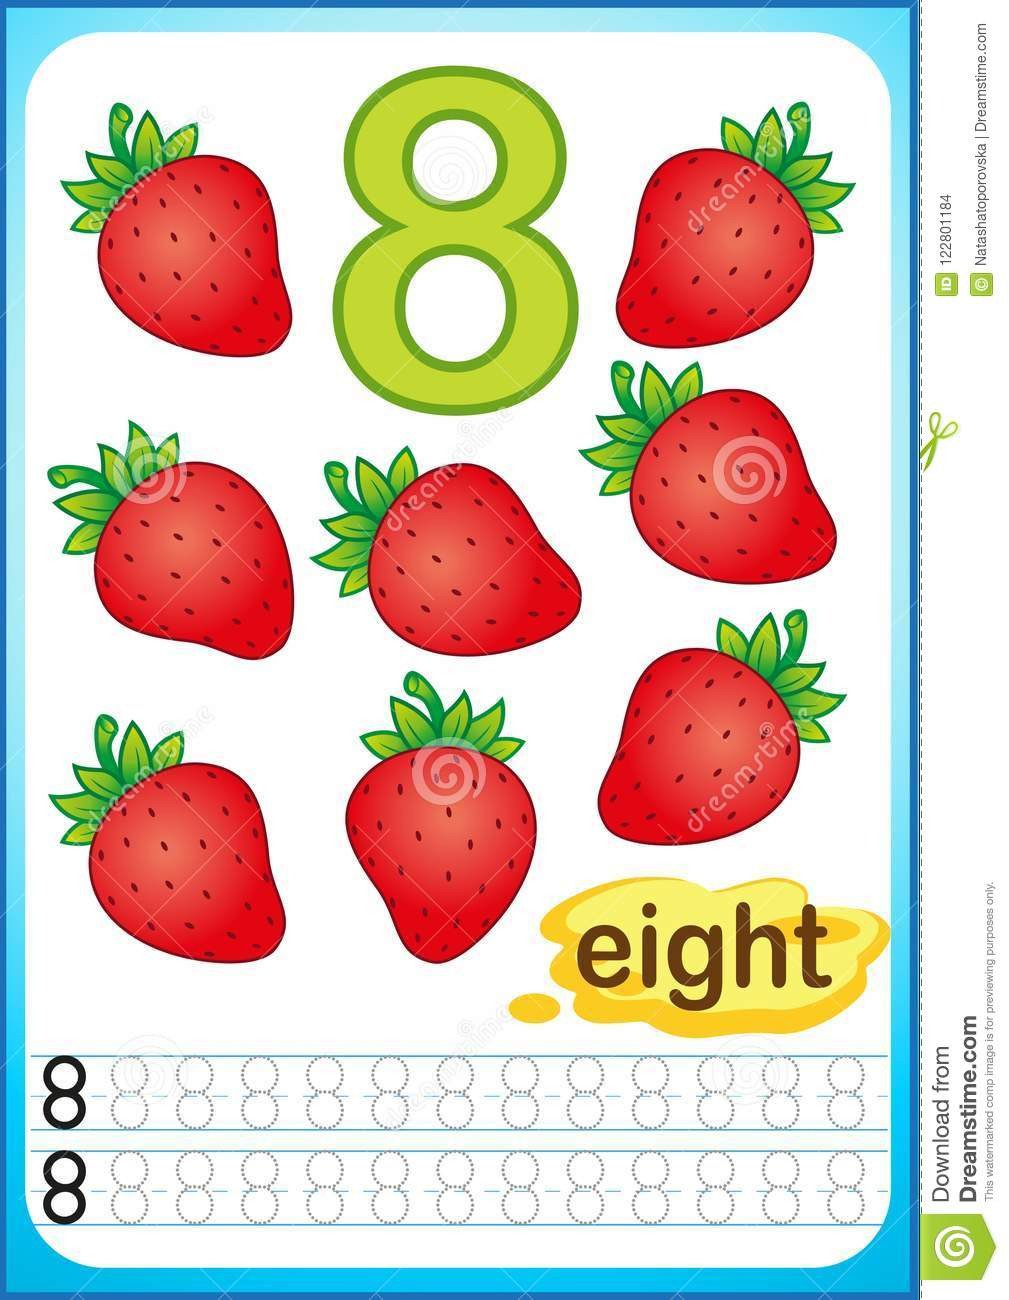 Preschool Fruits and Vegetables Worksheets Printable Worksheet for Kindergarten and Preschool Harvest